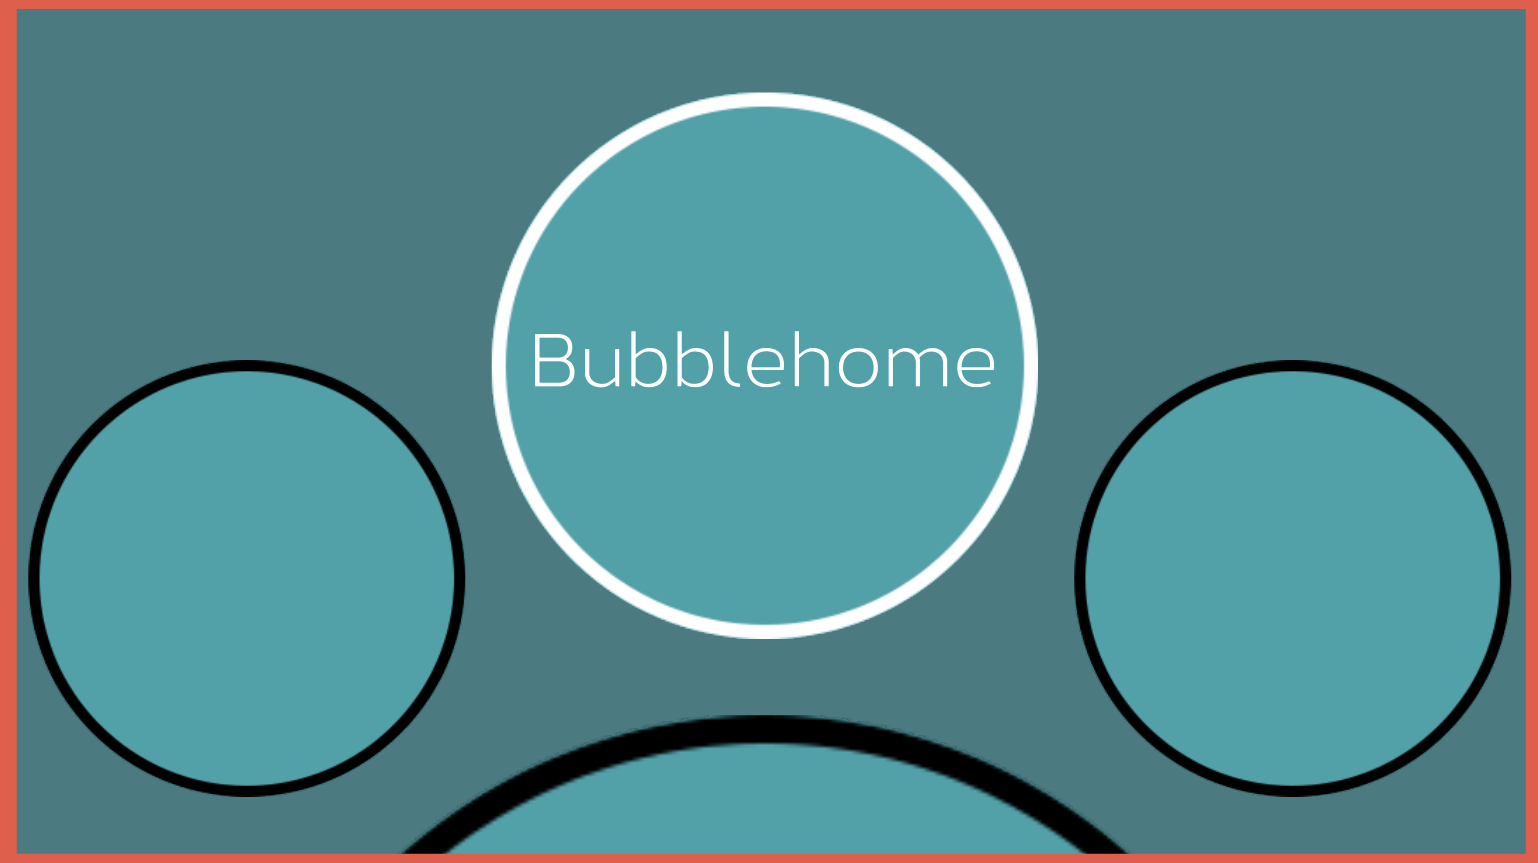 Bubblehome